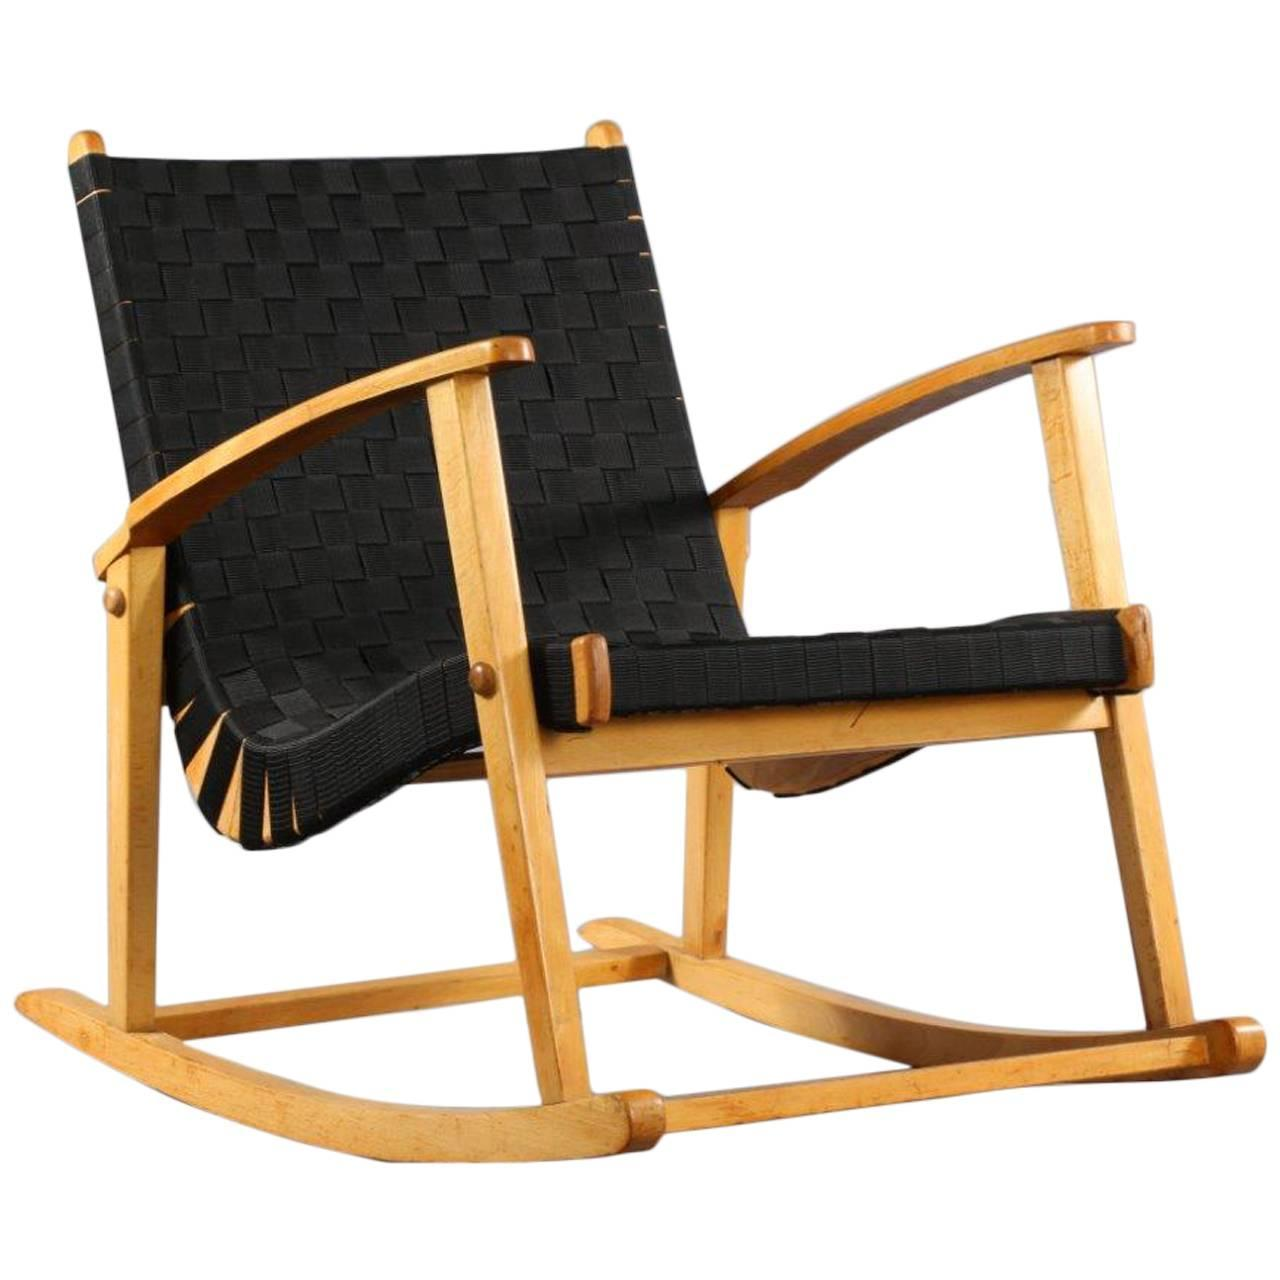 Comfortable Rocking Chair Comfortable Rocking Chair Attributed To Jens Risom 1950